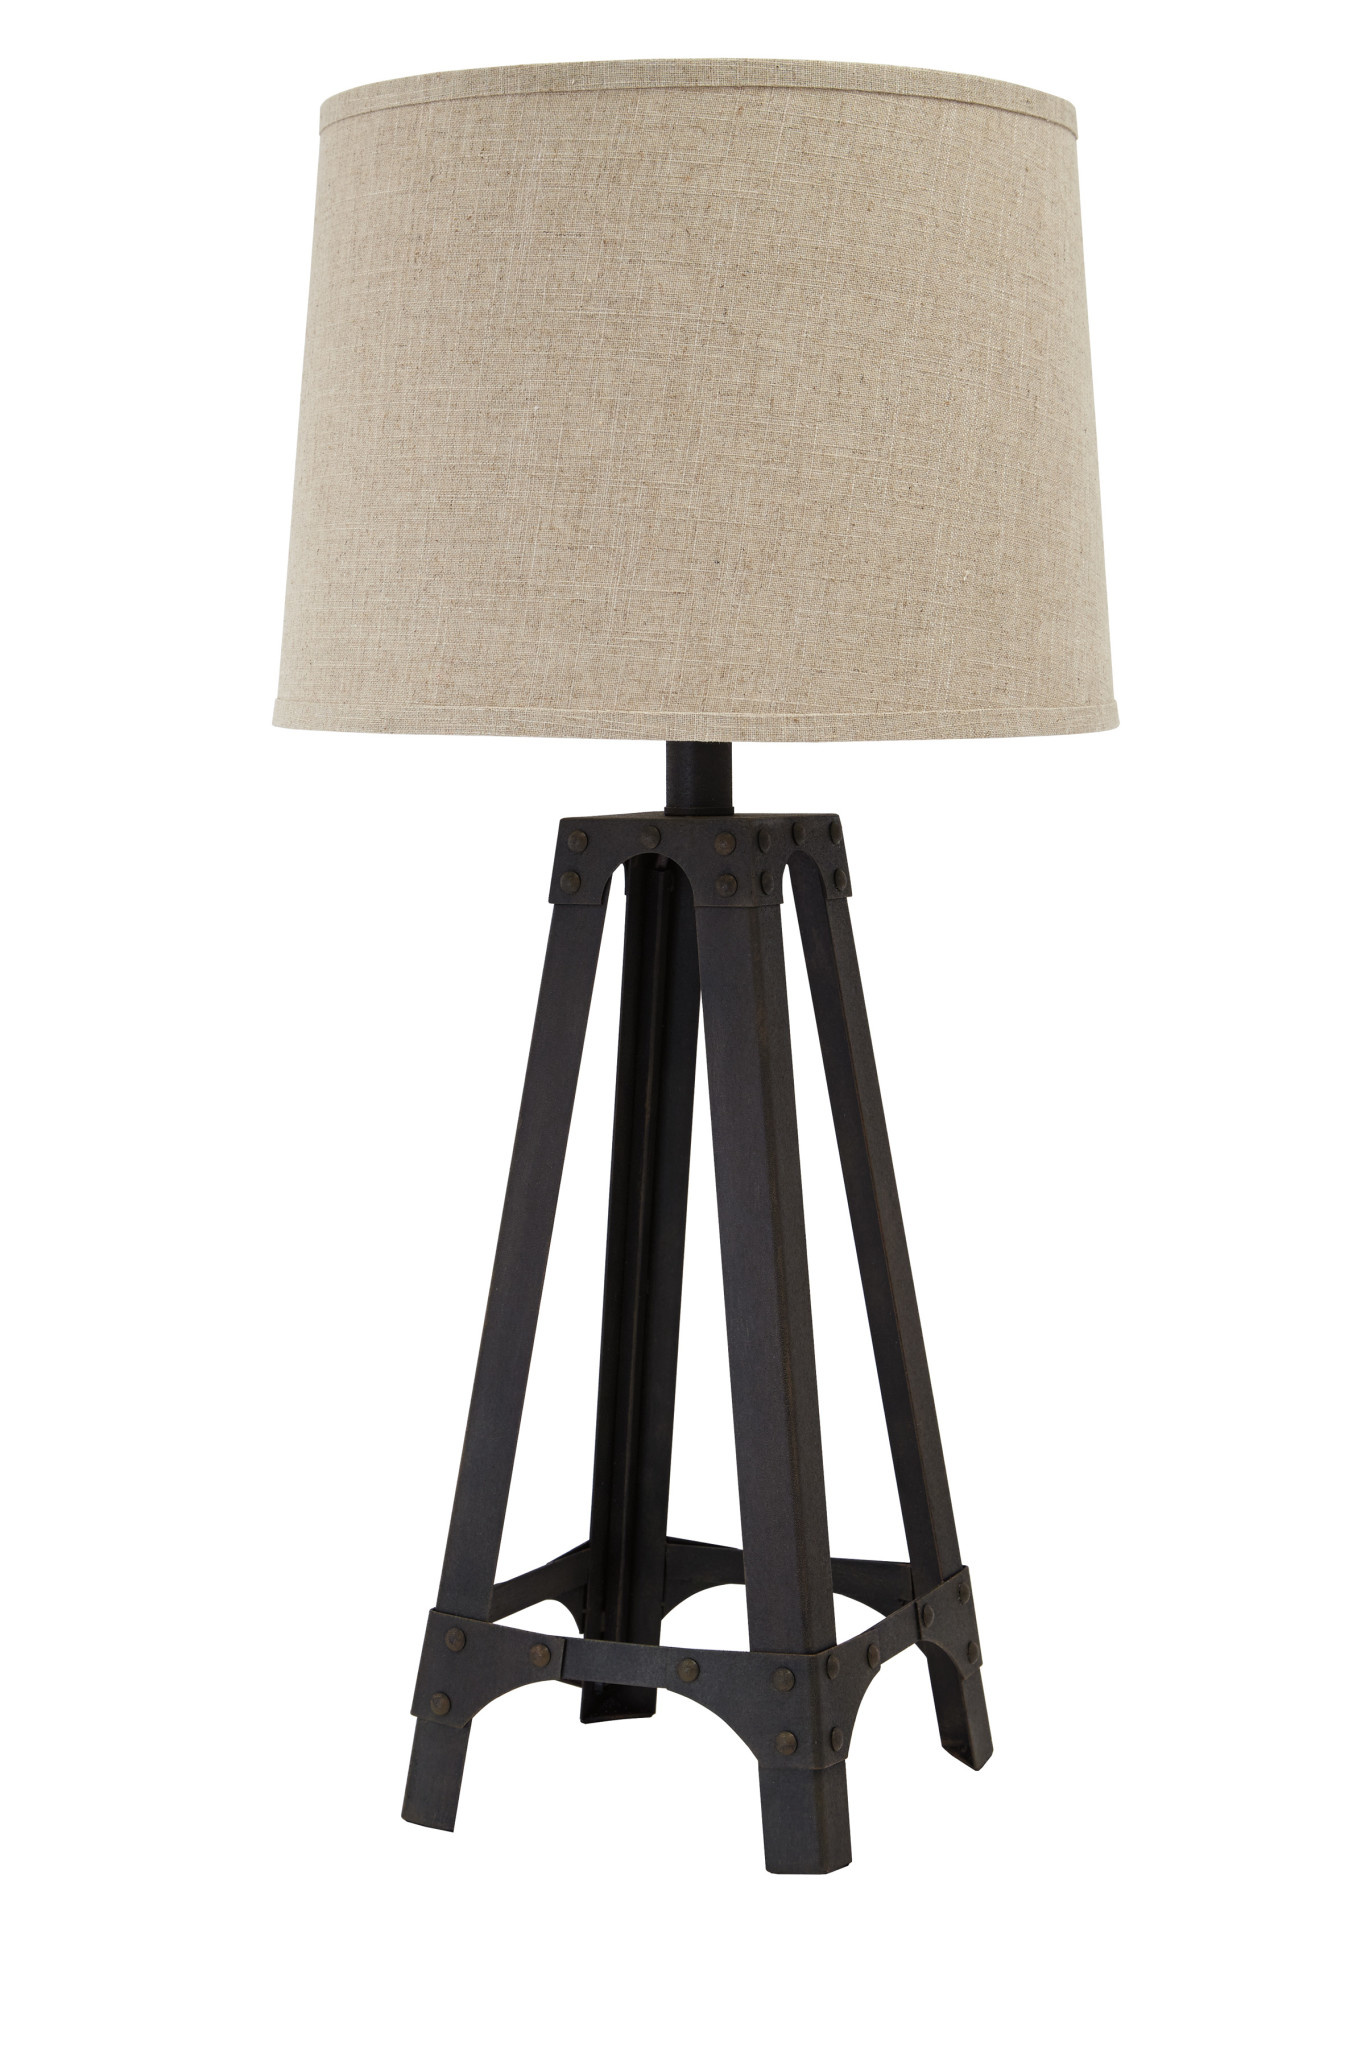 Signature Design METAL TABLE LAMP (1/CN)- Satchel- Brown L207984